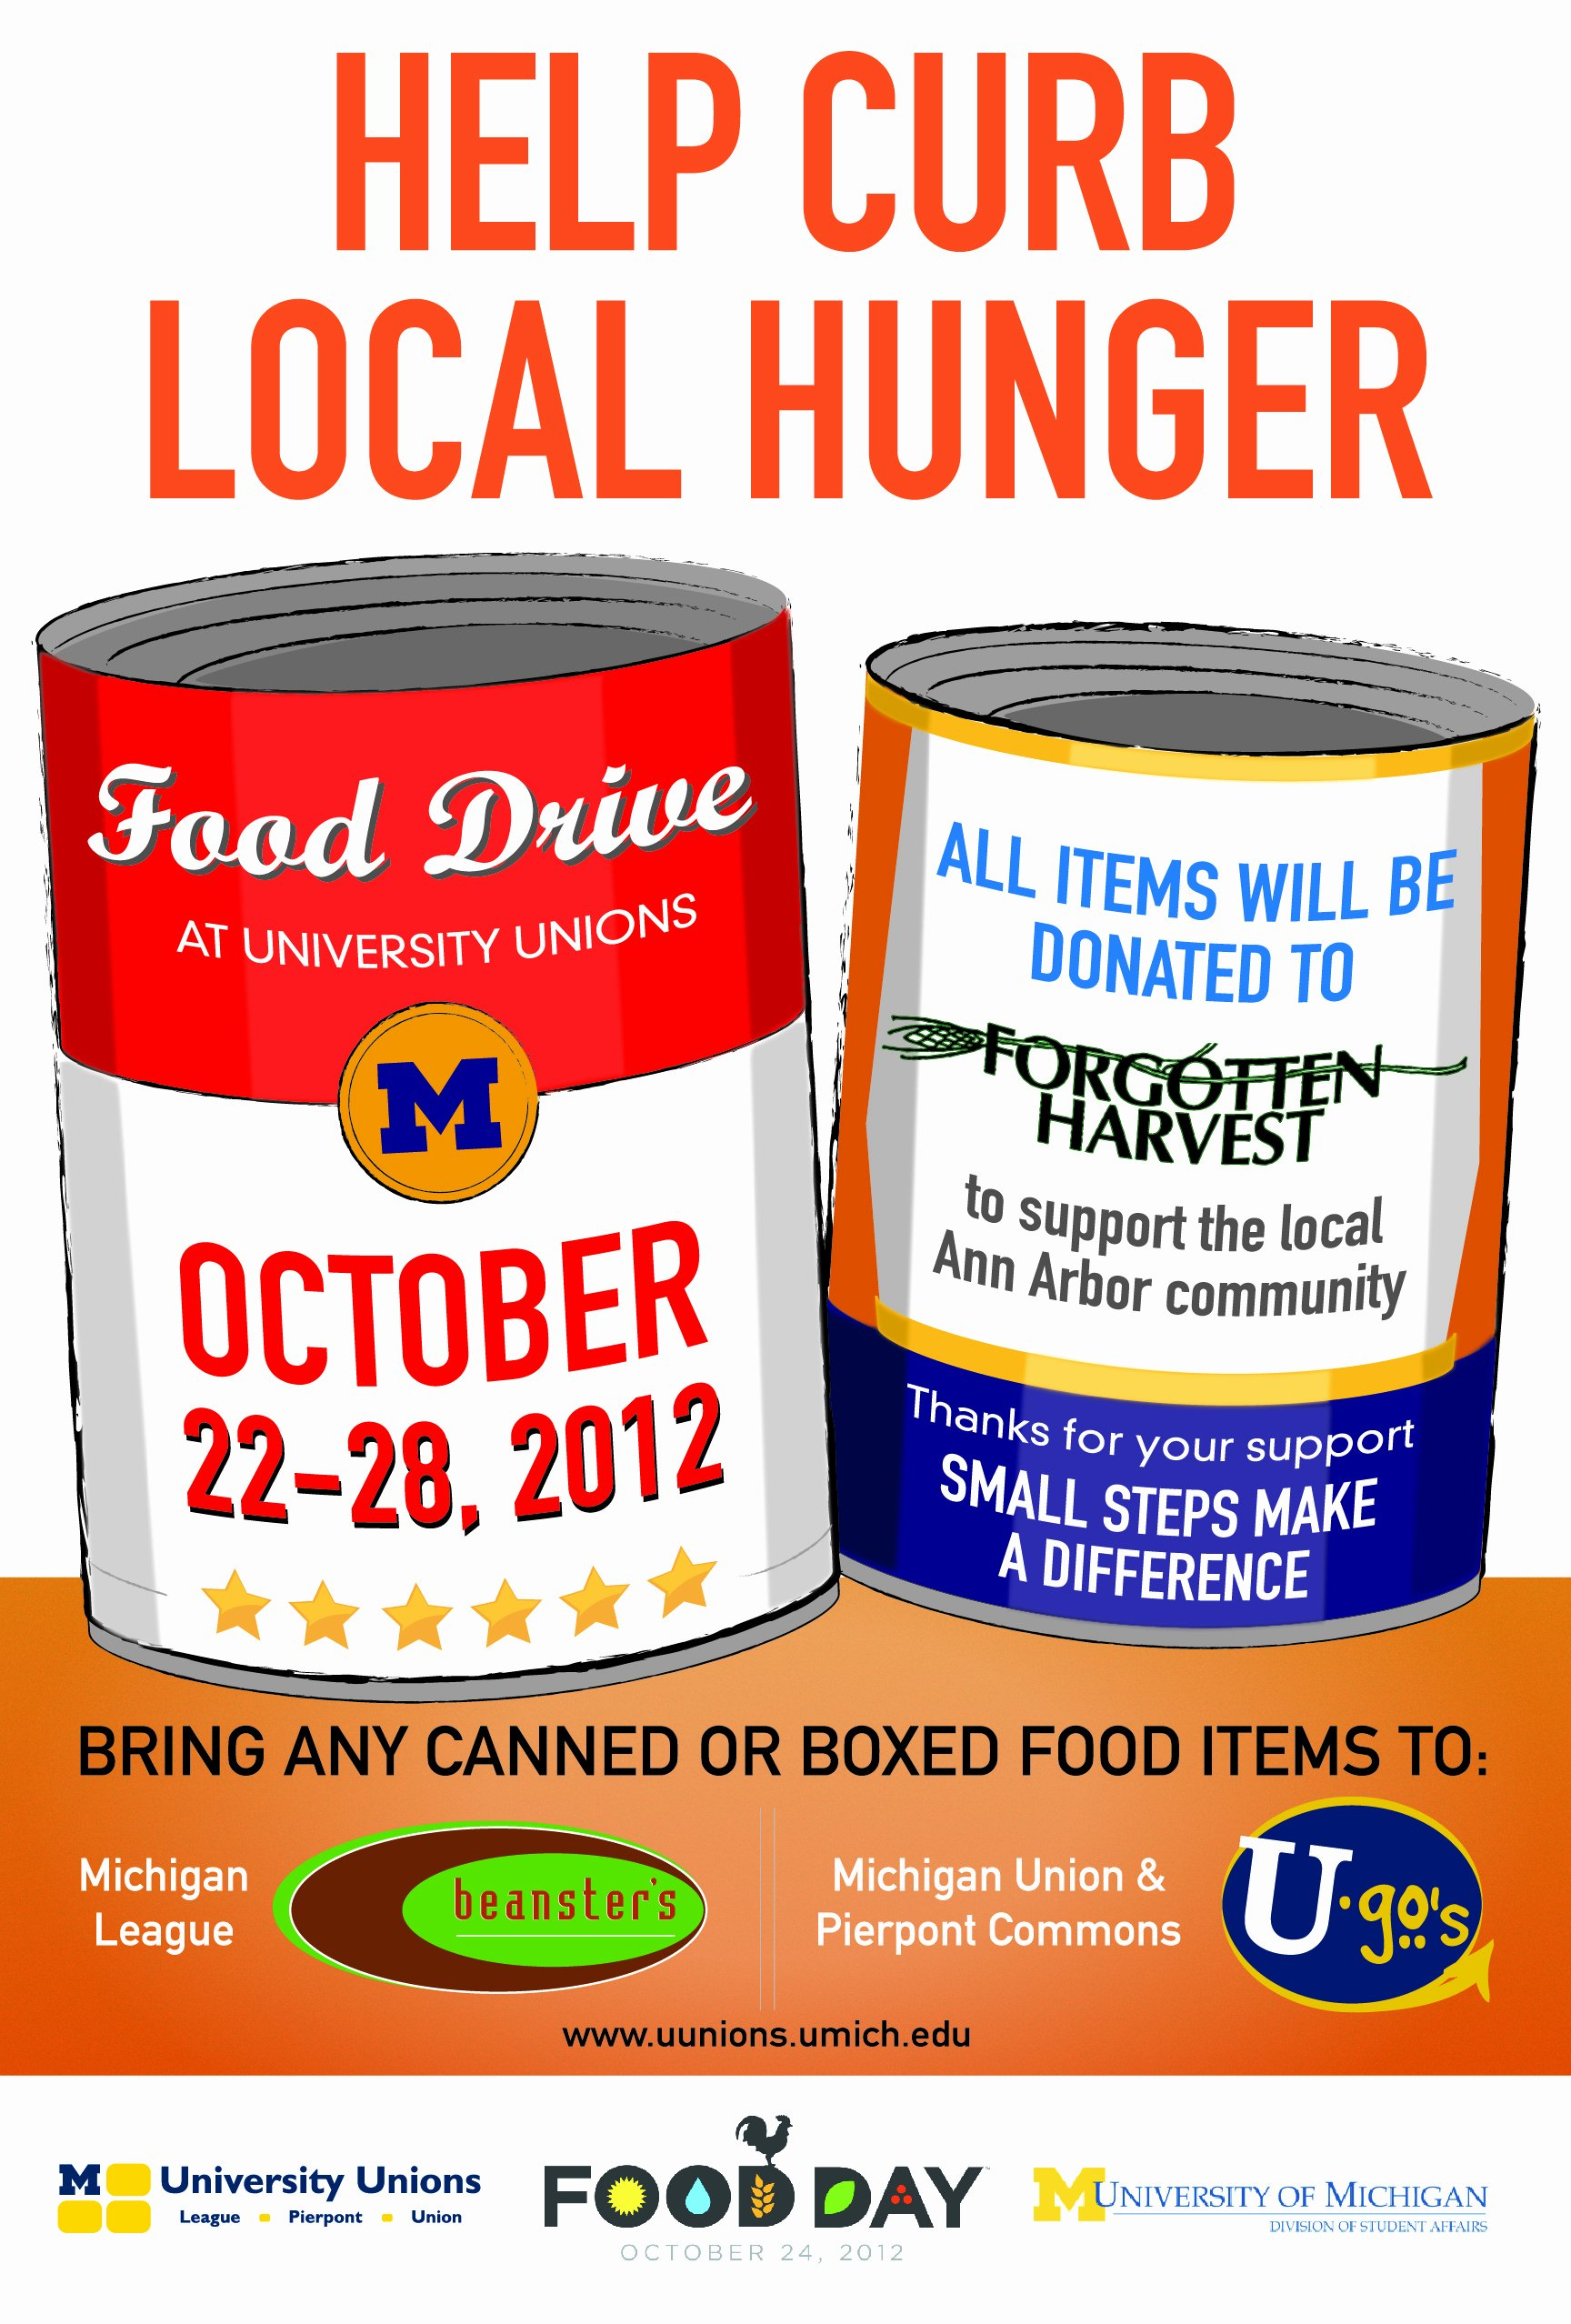 Canned Food Drive Flyer Template Best Of Celebrate Food Day Oct 22 26